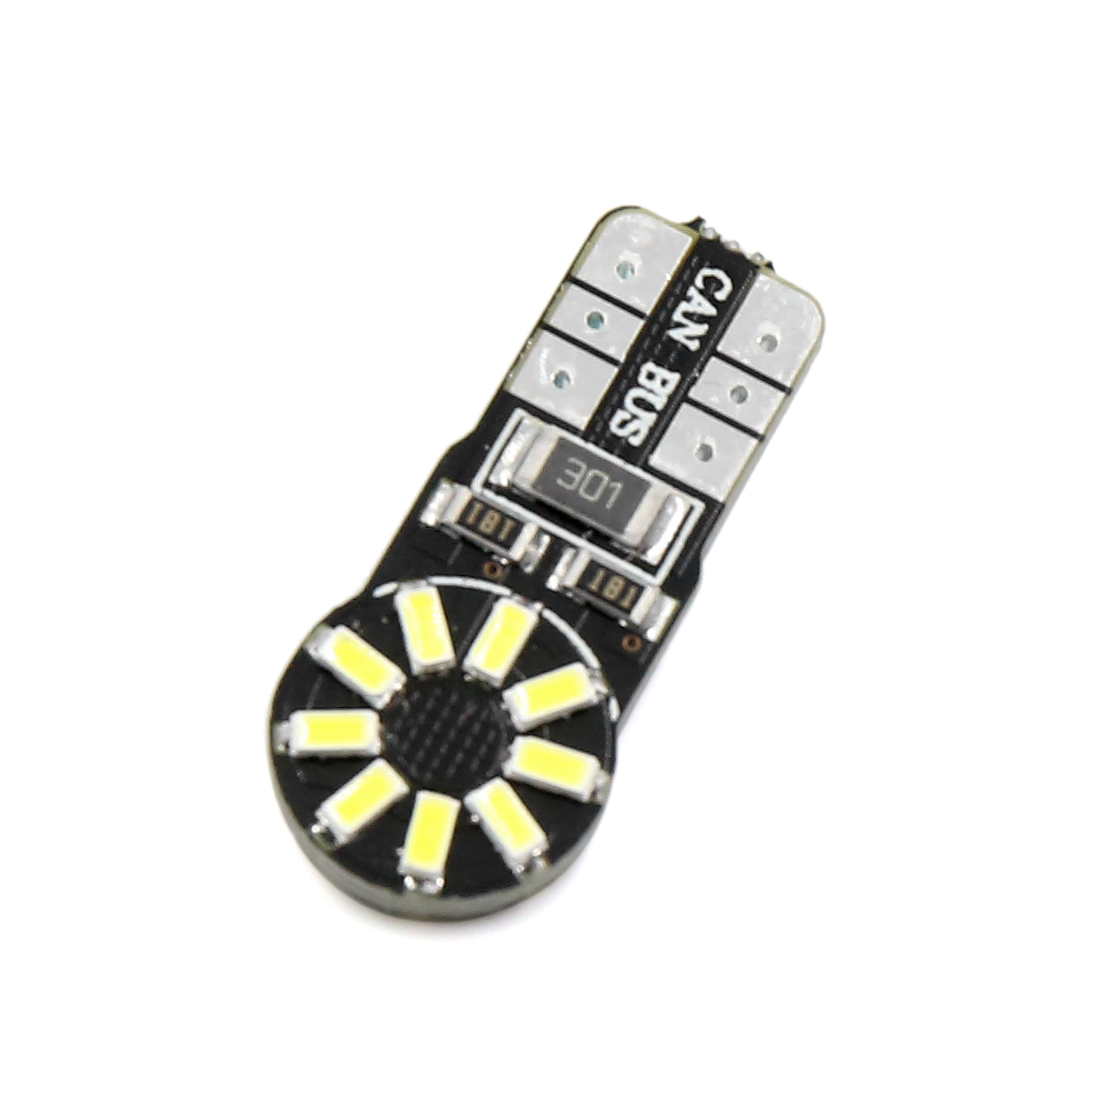 10pcs Error Free Canbus T10 W5W 18SMD LED Car License Plate Side Light Bulbs 194 - image 1 de 8